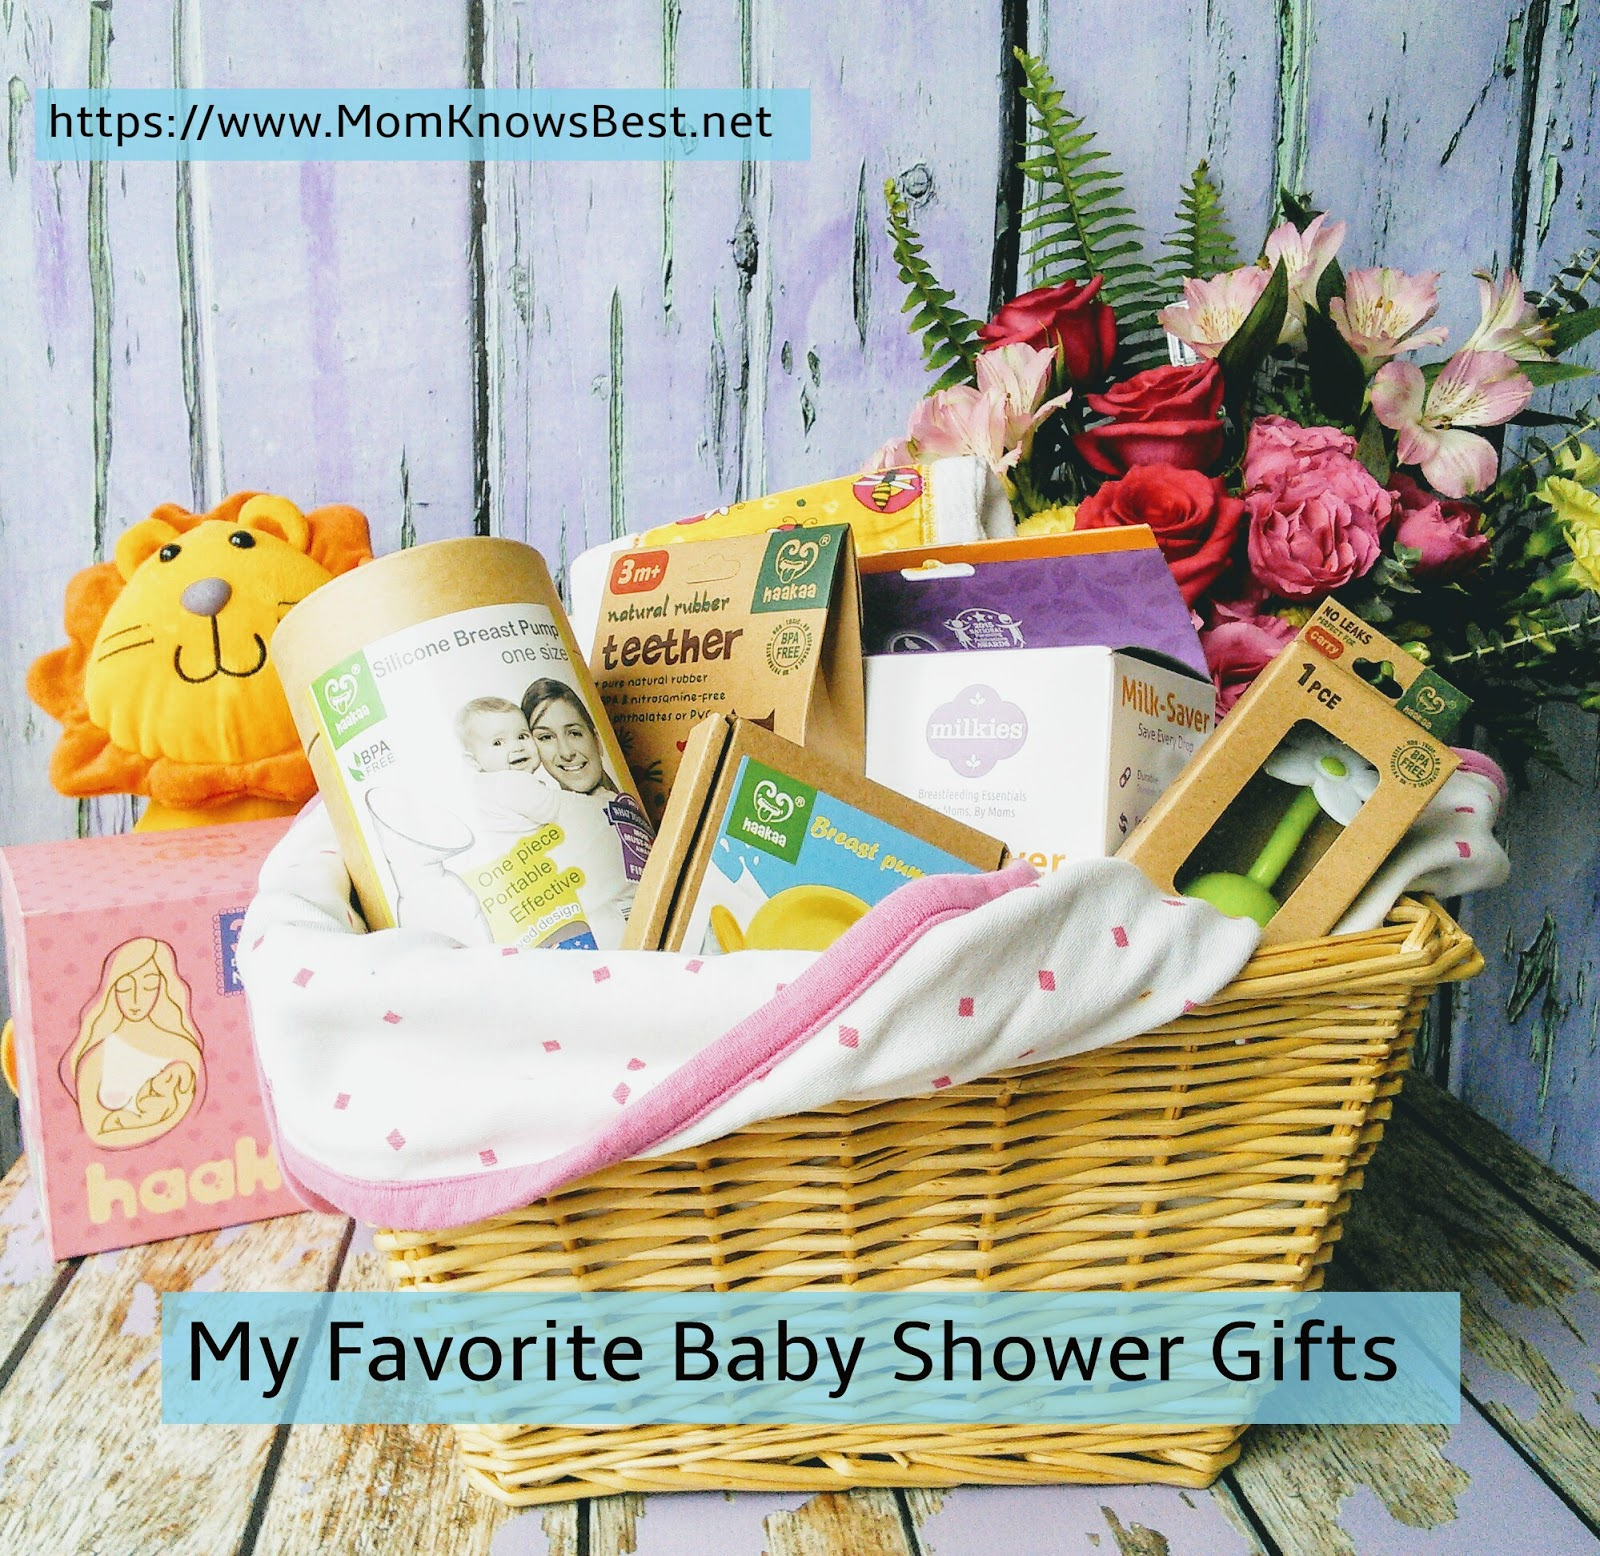 Good Baby Shower Gift: I Received Samples Of The Mentioned Products To Facilitate